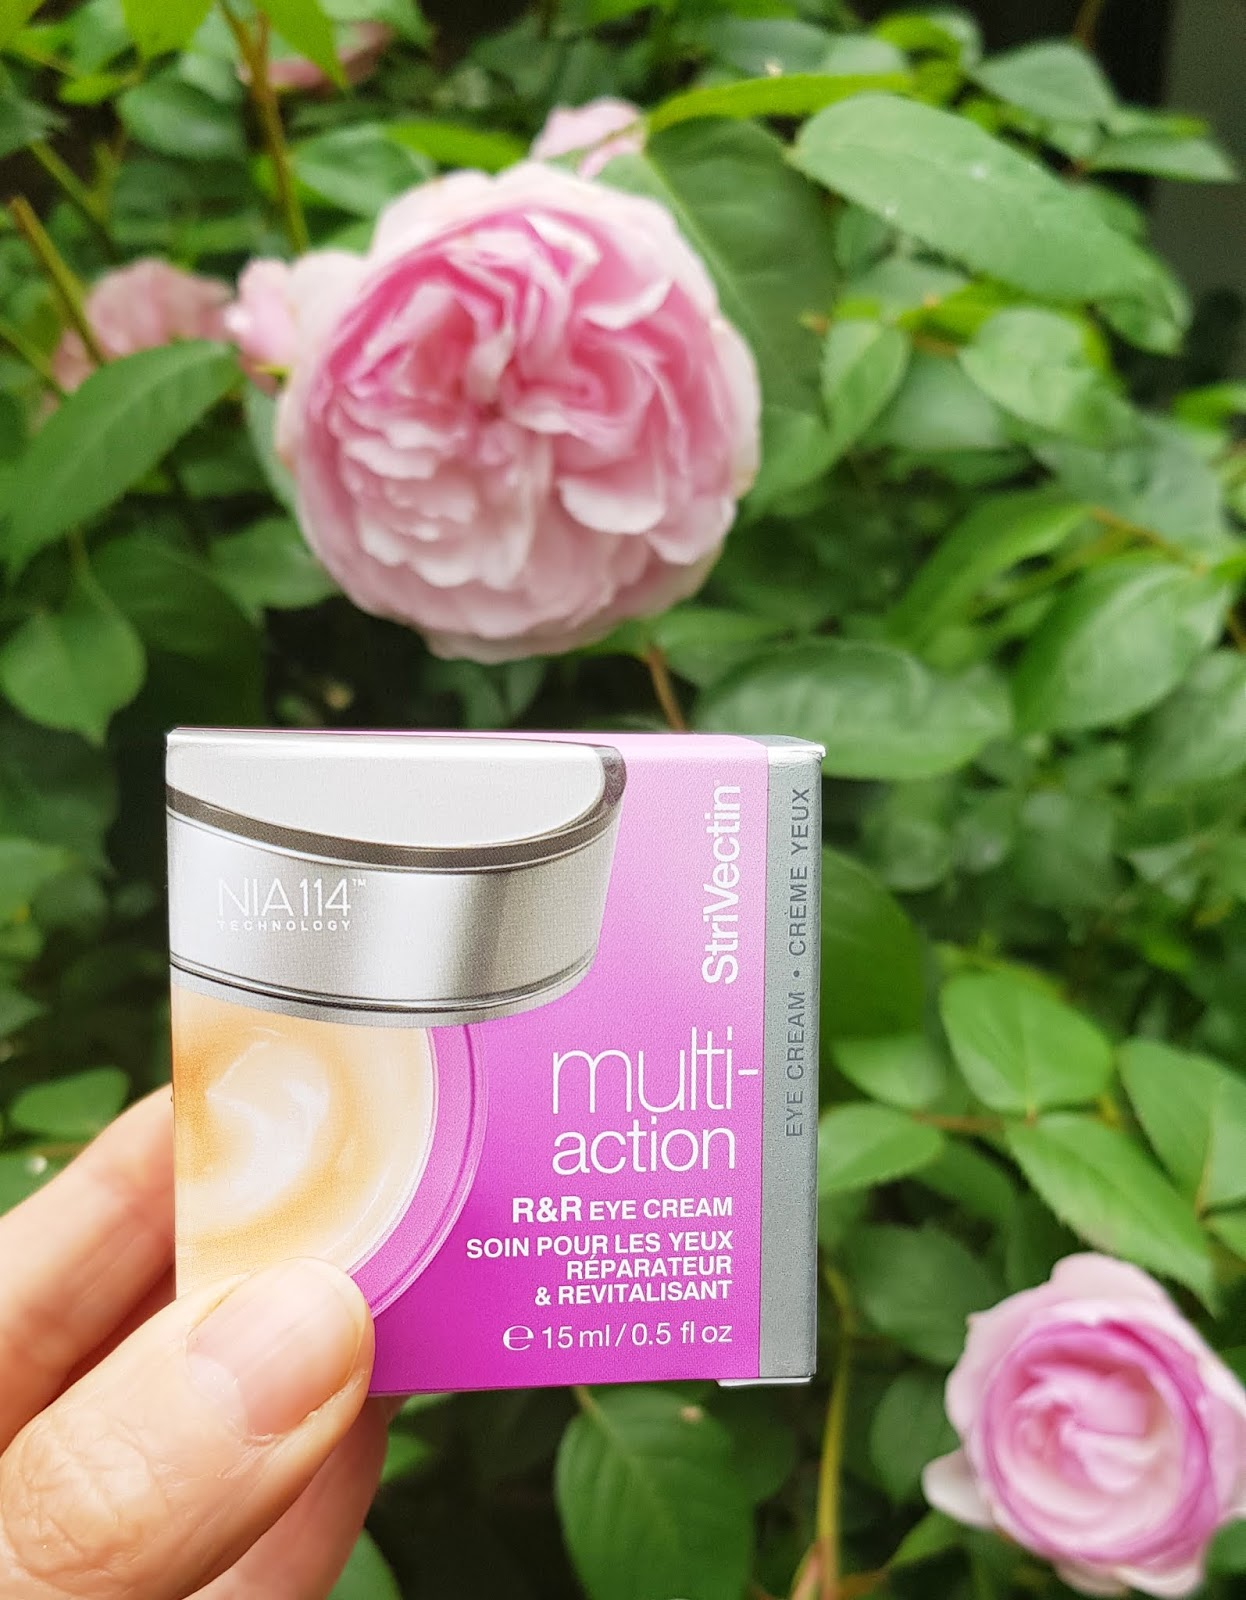 Clinical beauty brand Strivectin's new R&R eye cream photographed by Is This Mutton.com